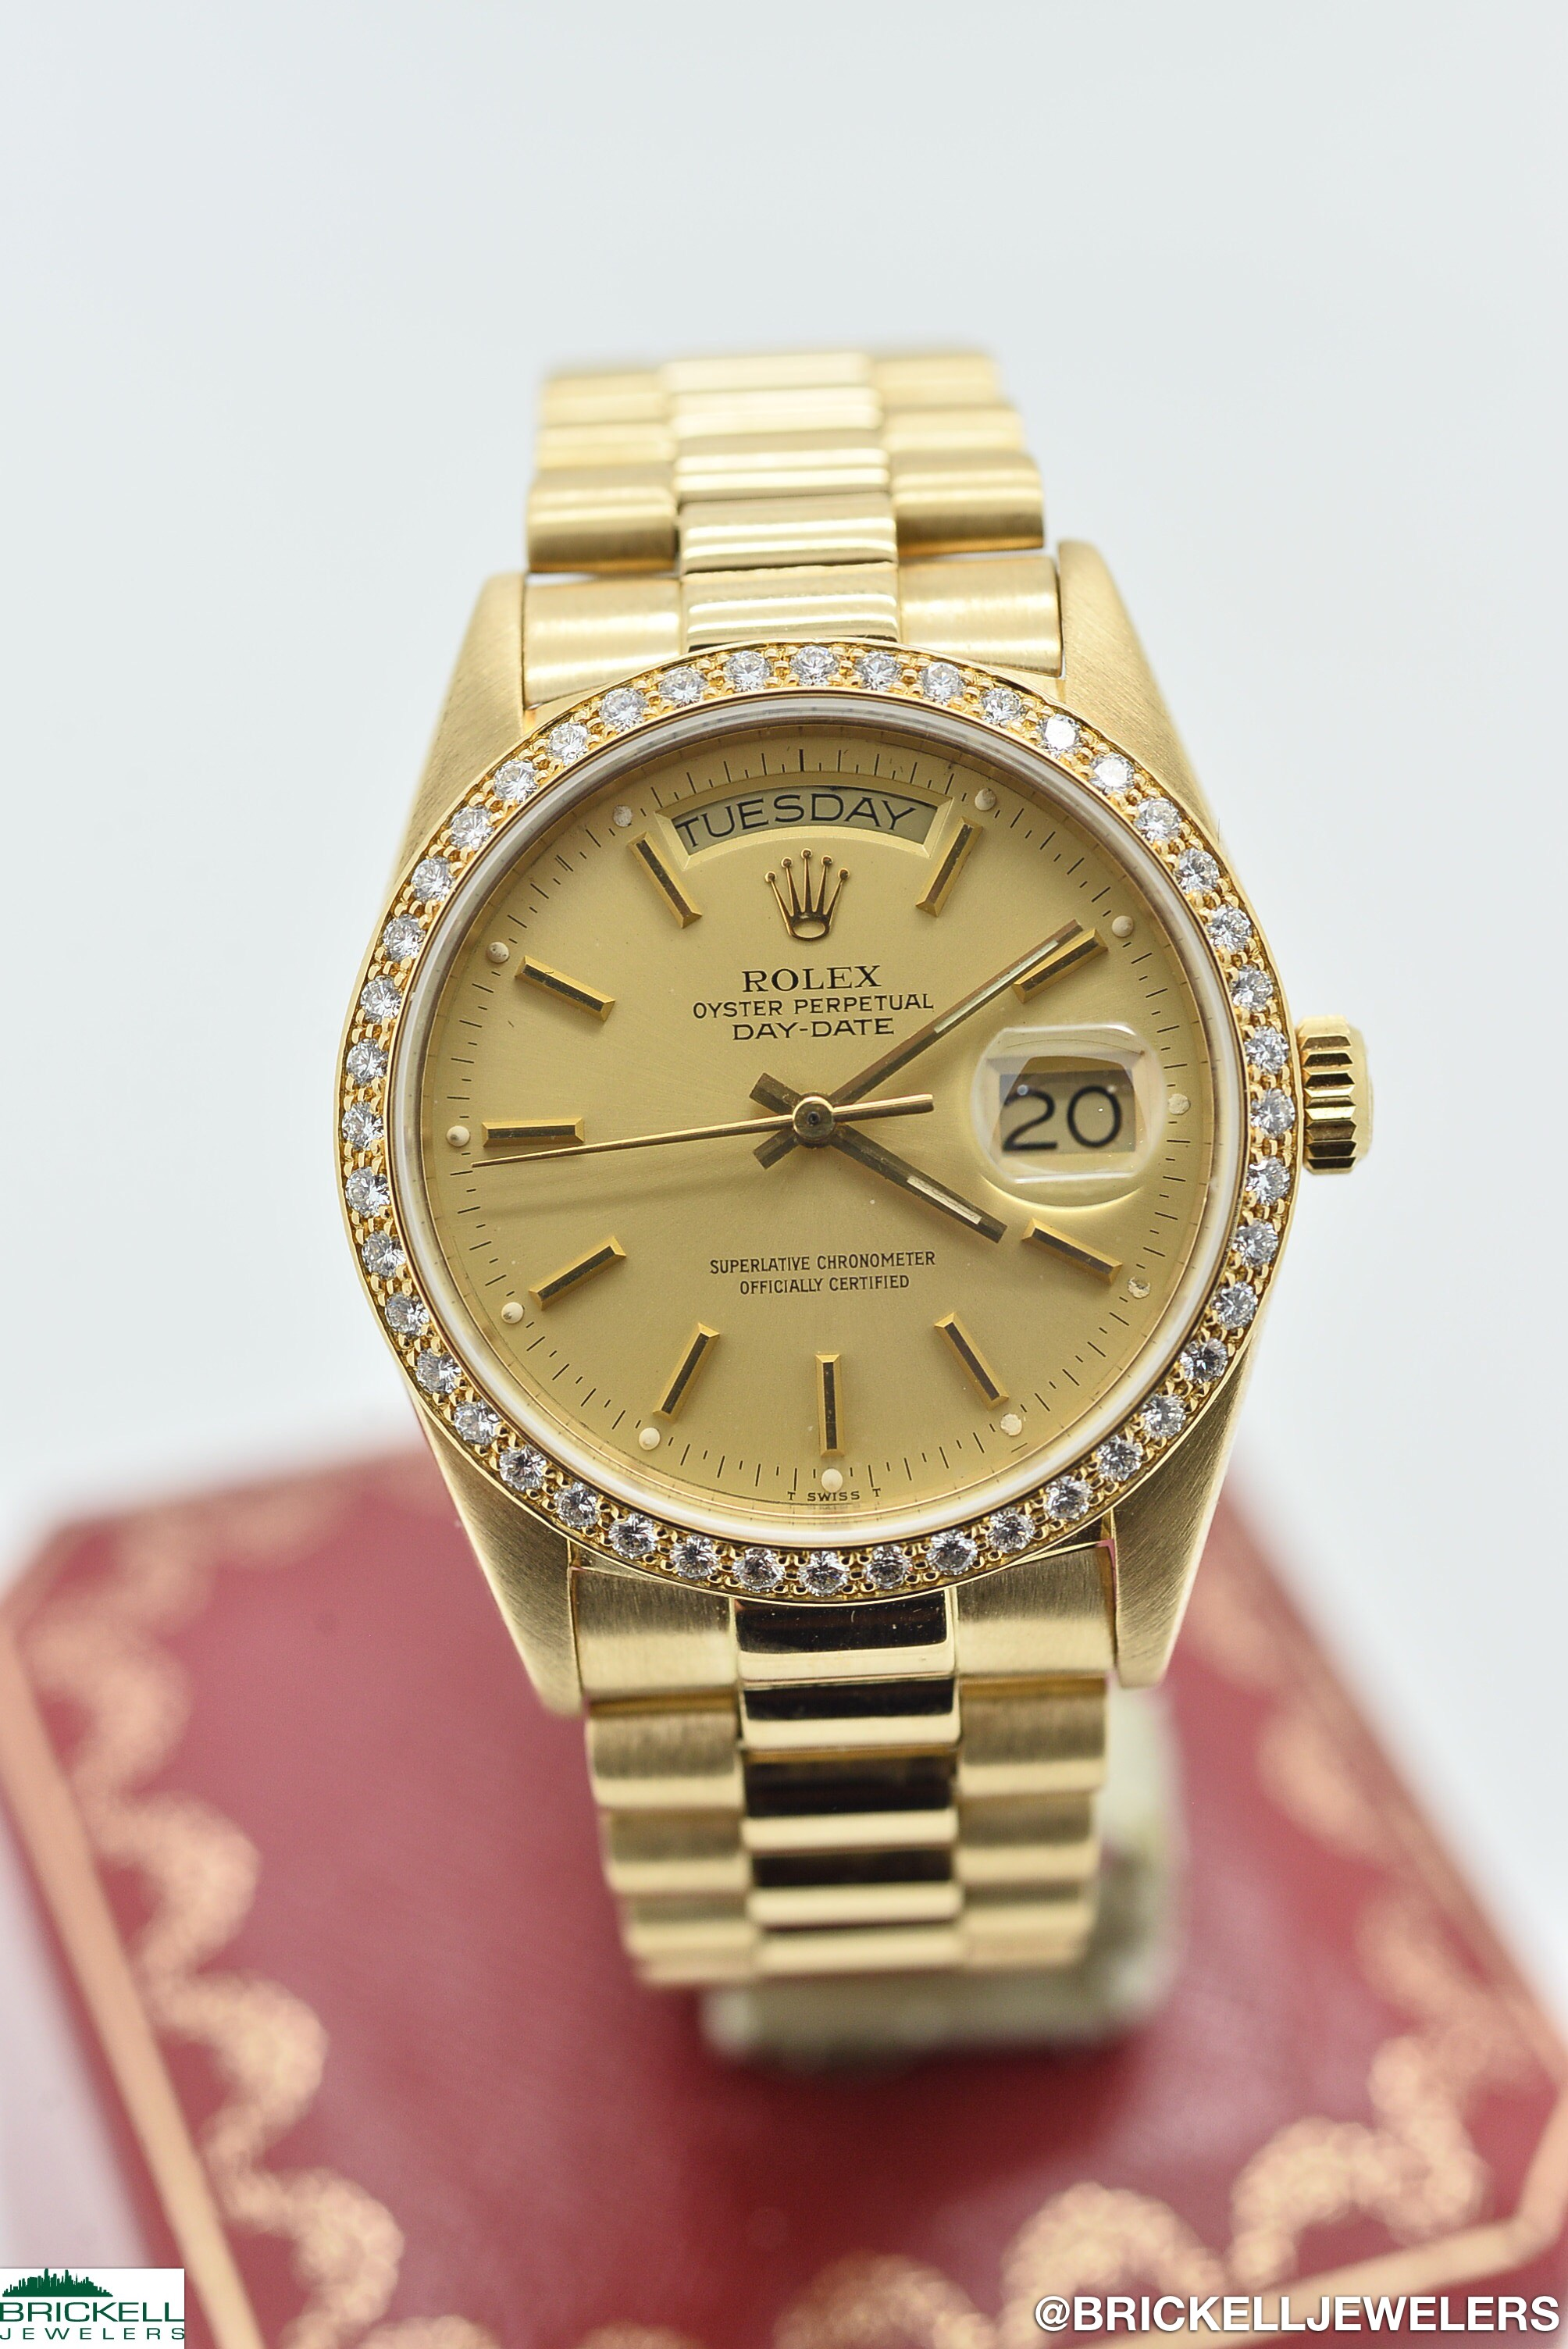 ROLEX	DAY-DATE PRESIDENTIAL	18048	GOLD		DIAMOND	18K	YELLOW	Solid Gold			Mechanical (Automatic)	WATCH